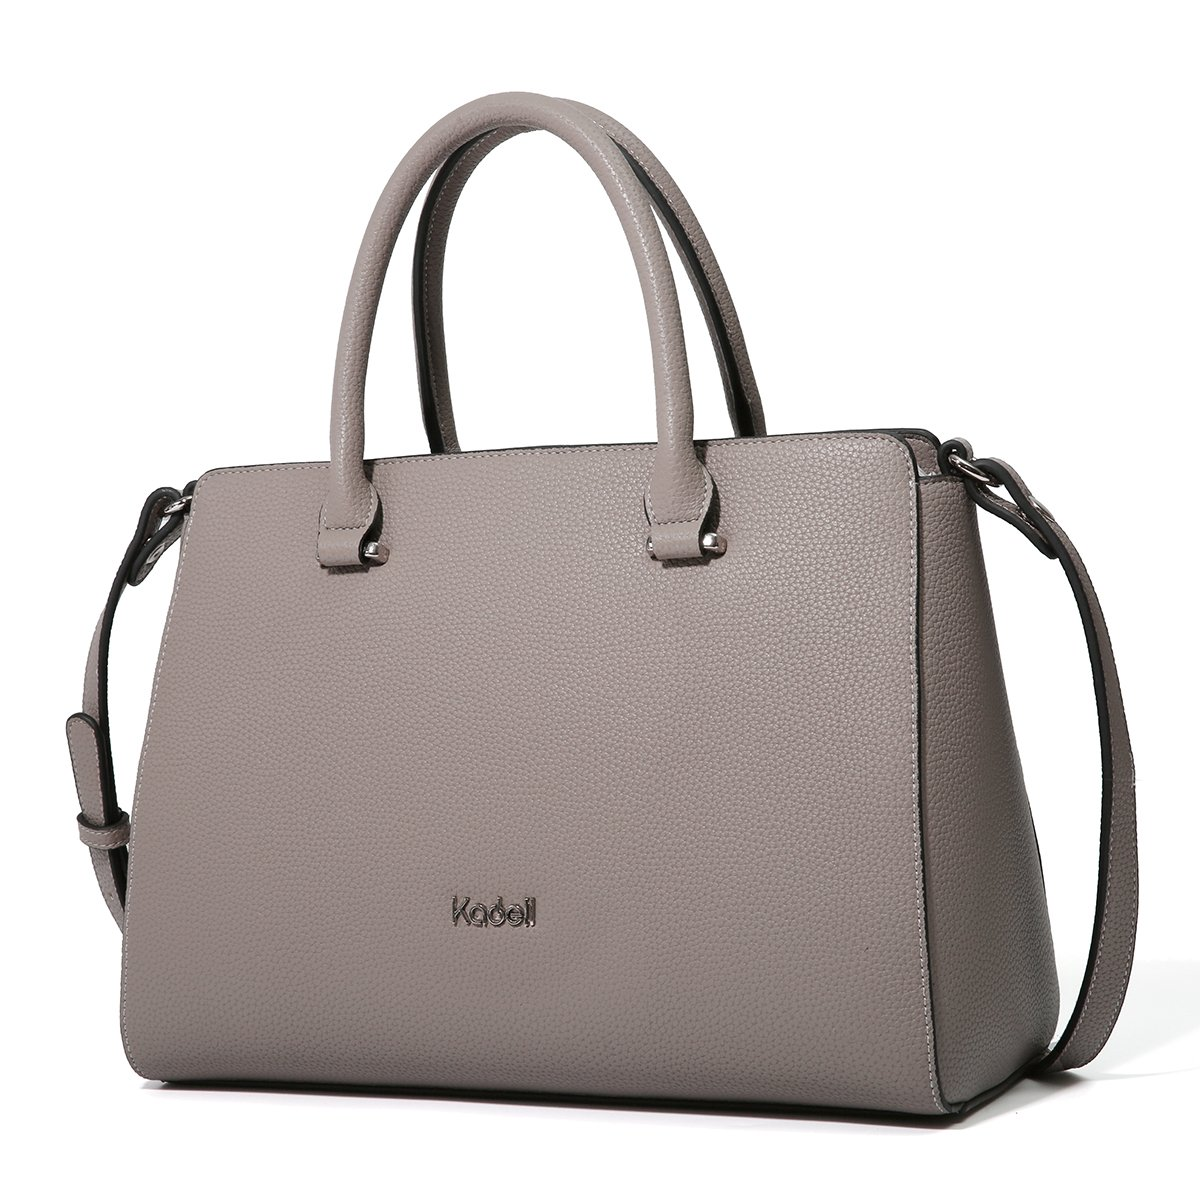 Kadell Women Soft Top Handle Satchel Handbags Shoulder Bag Tote Purse Messenger Bags Dark Grey